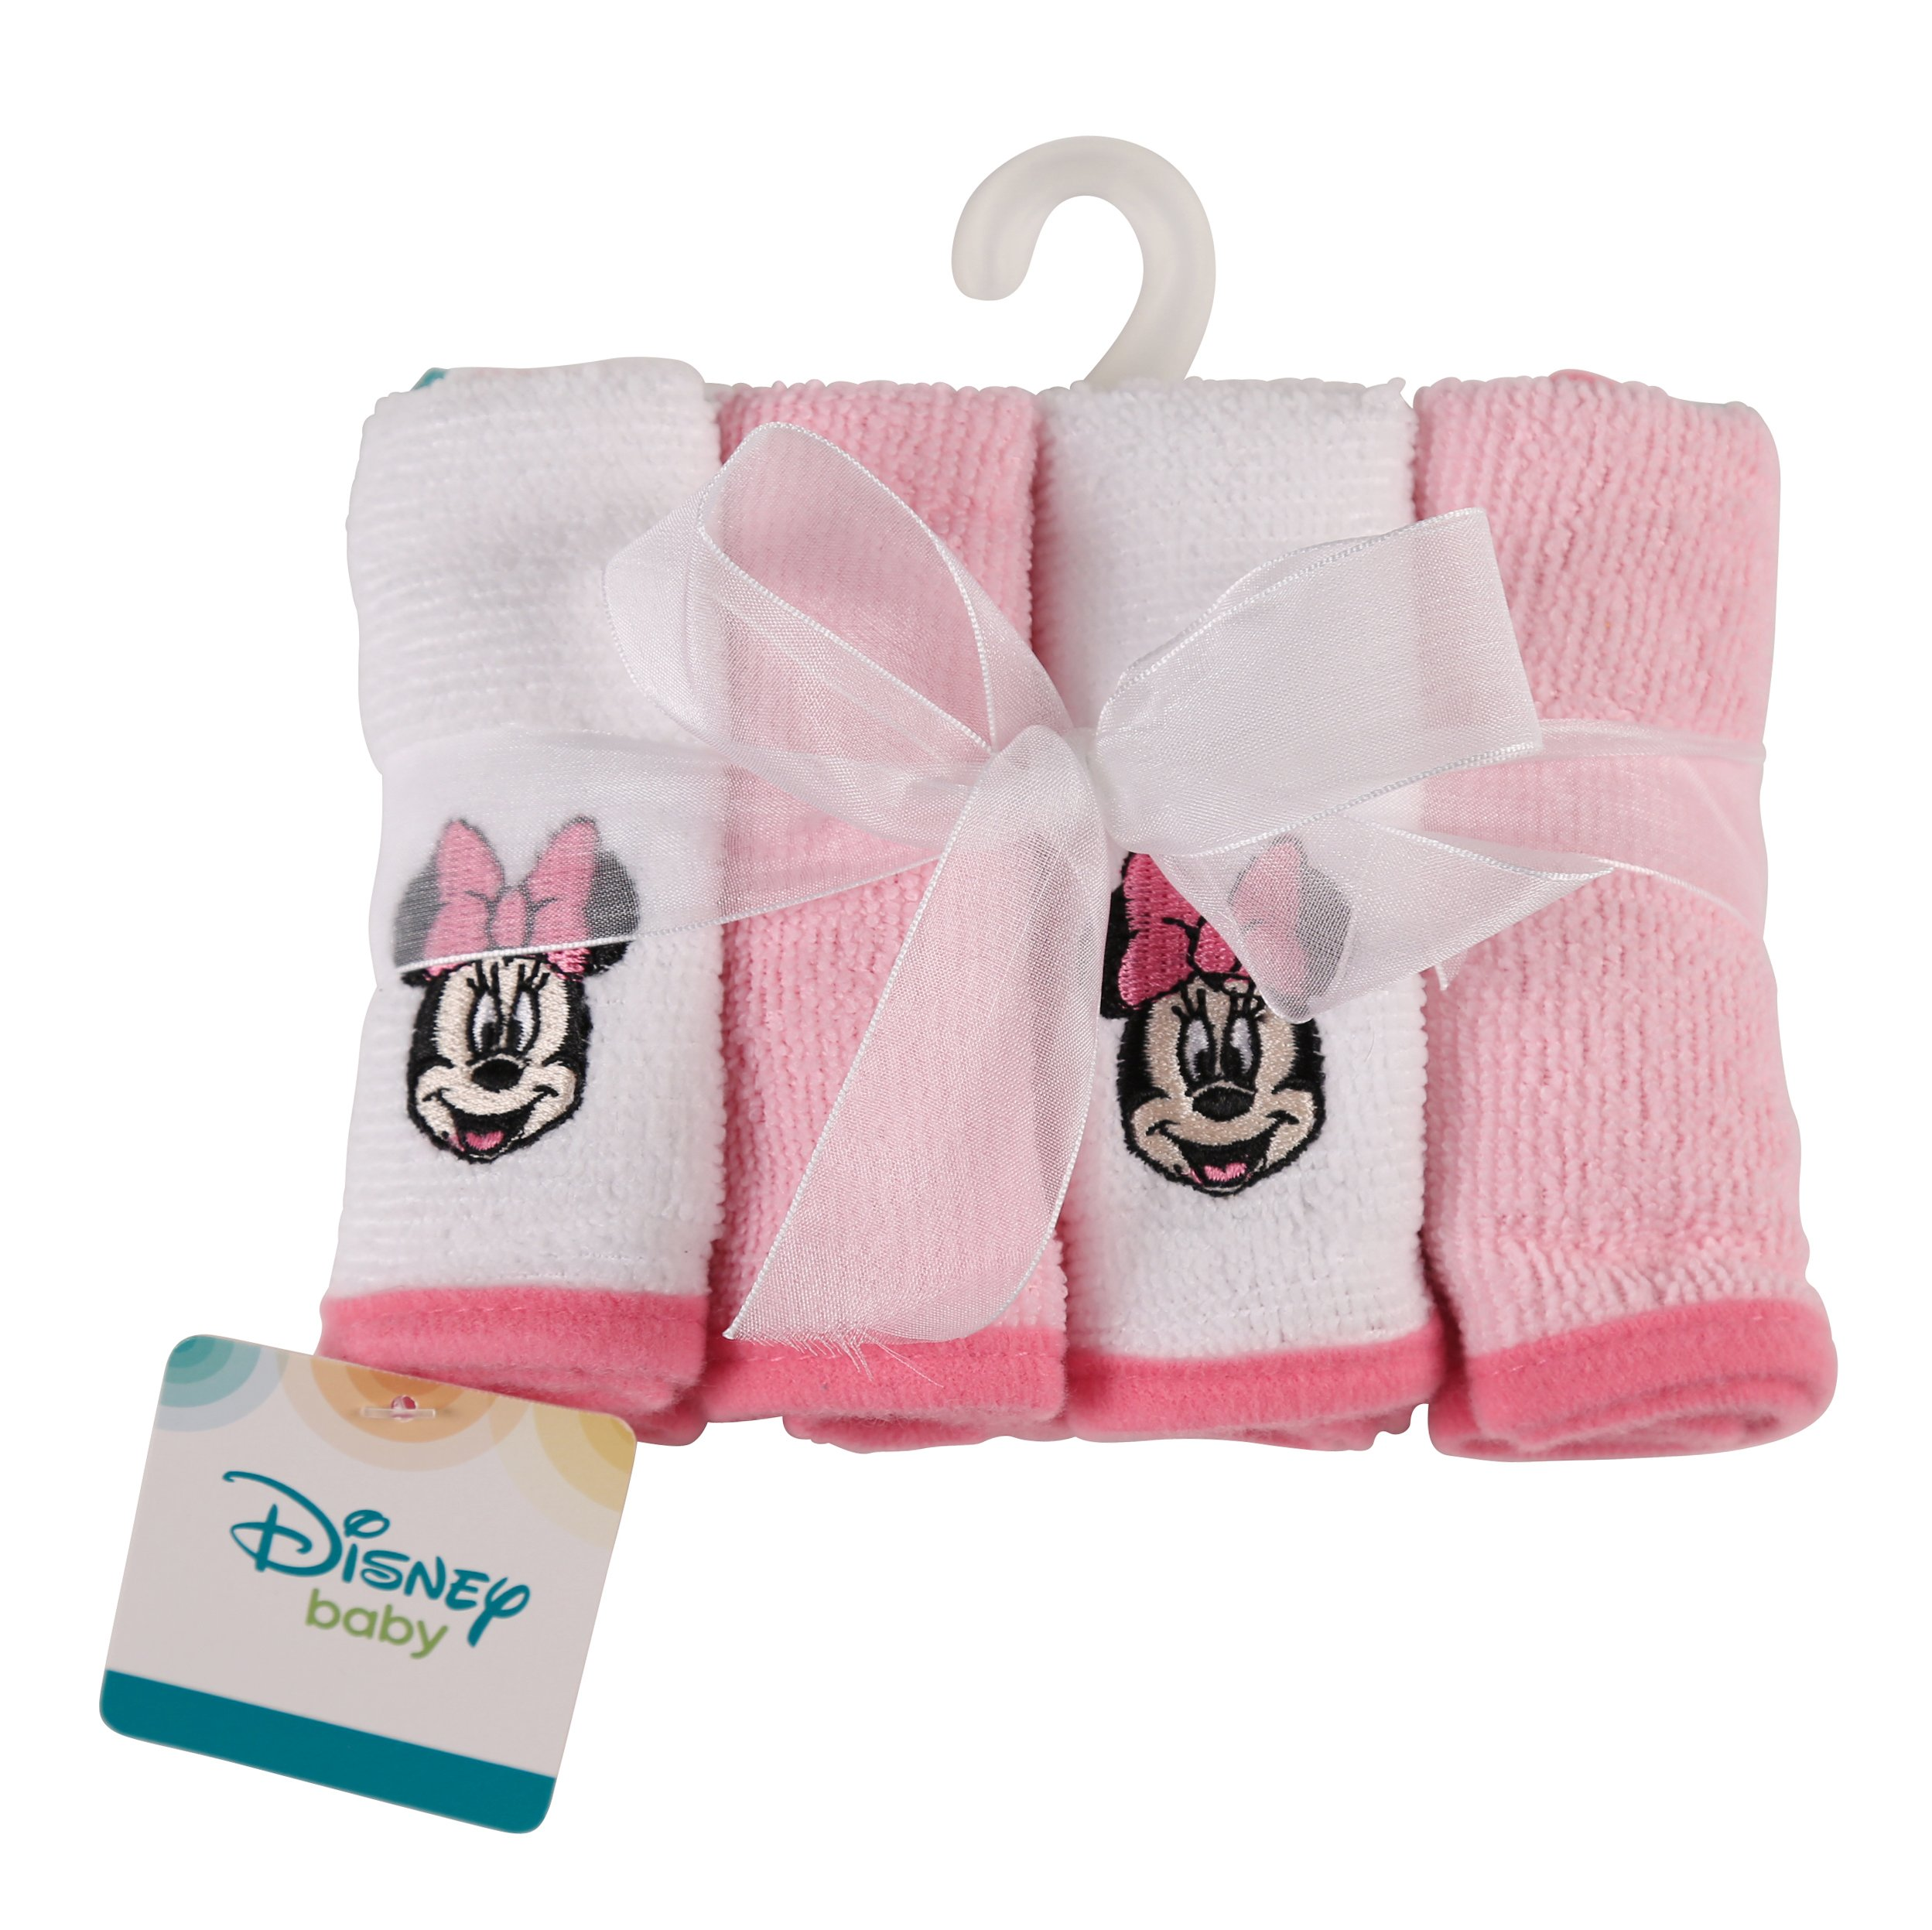 Disney Minnie Mouse Washcloth Set, Pink